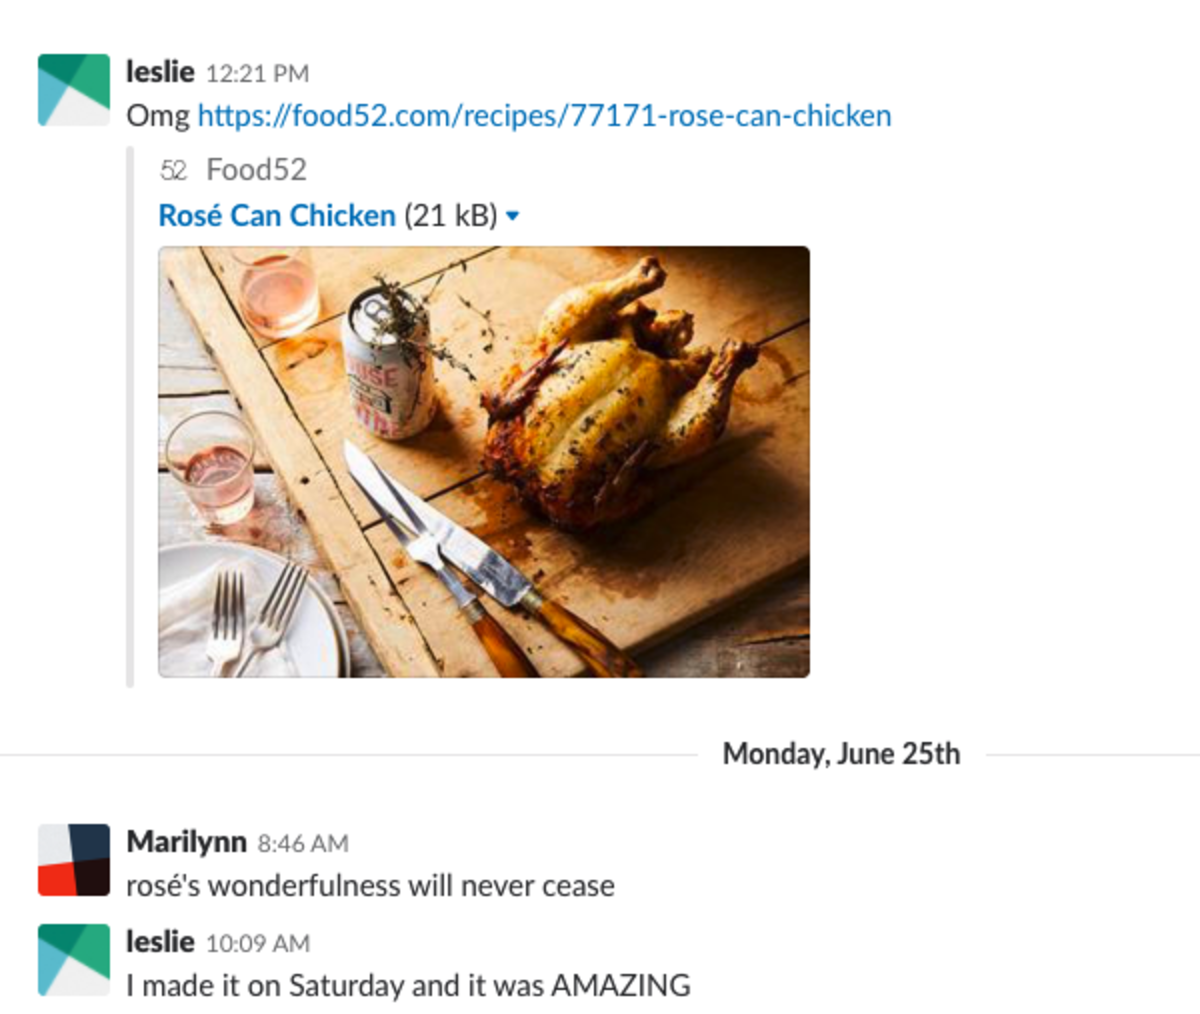 This is how most of the conversations on our company Slack go